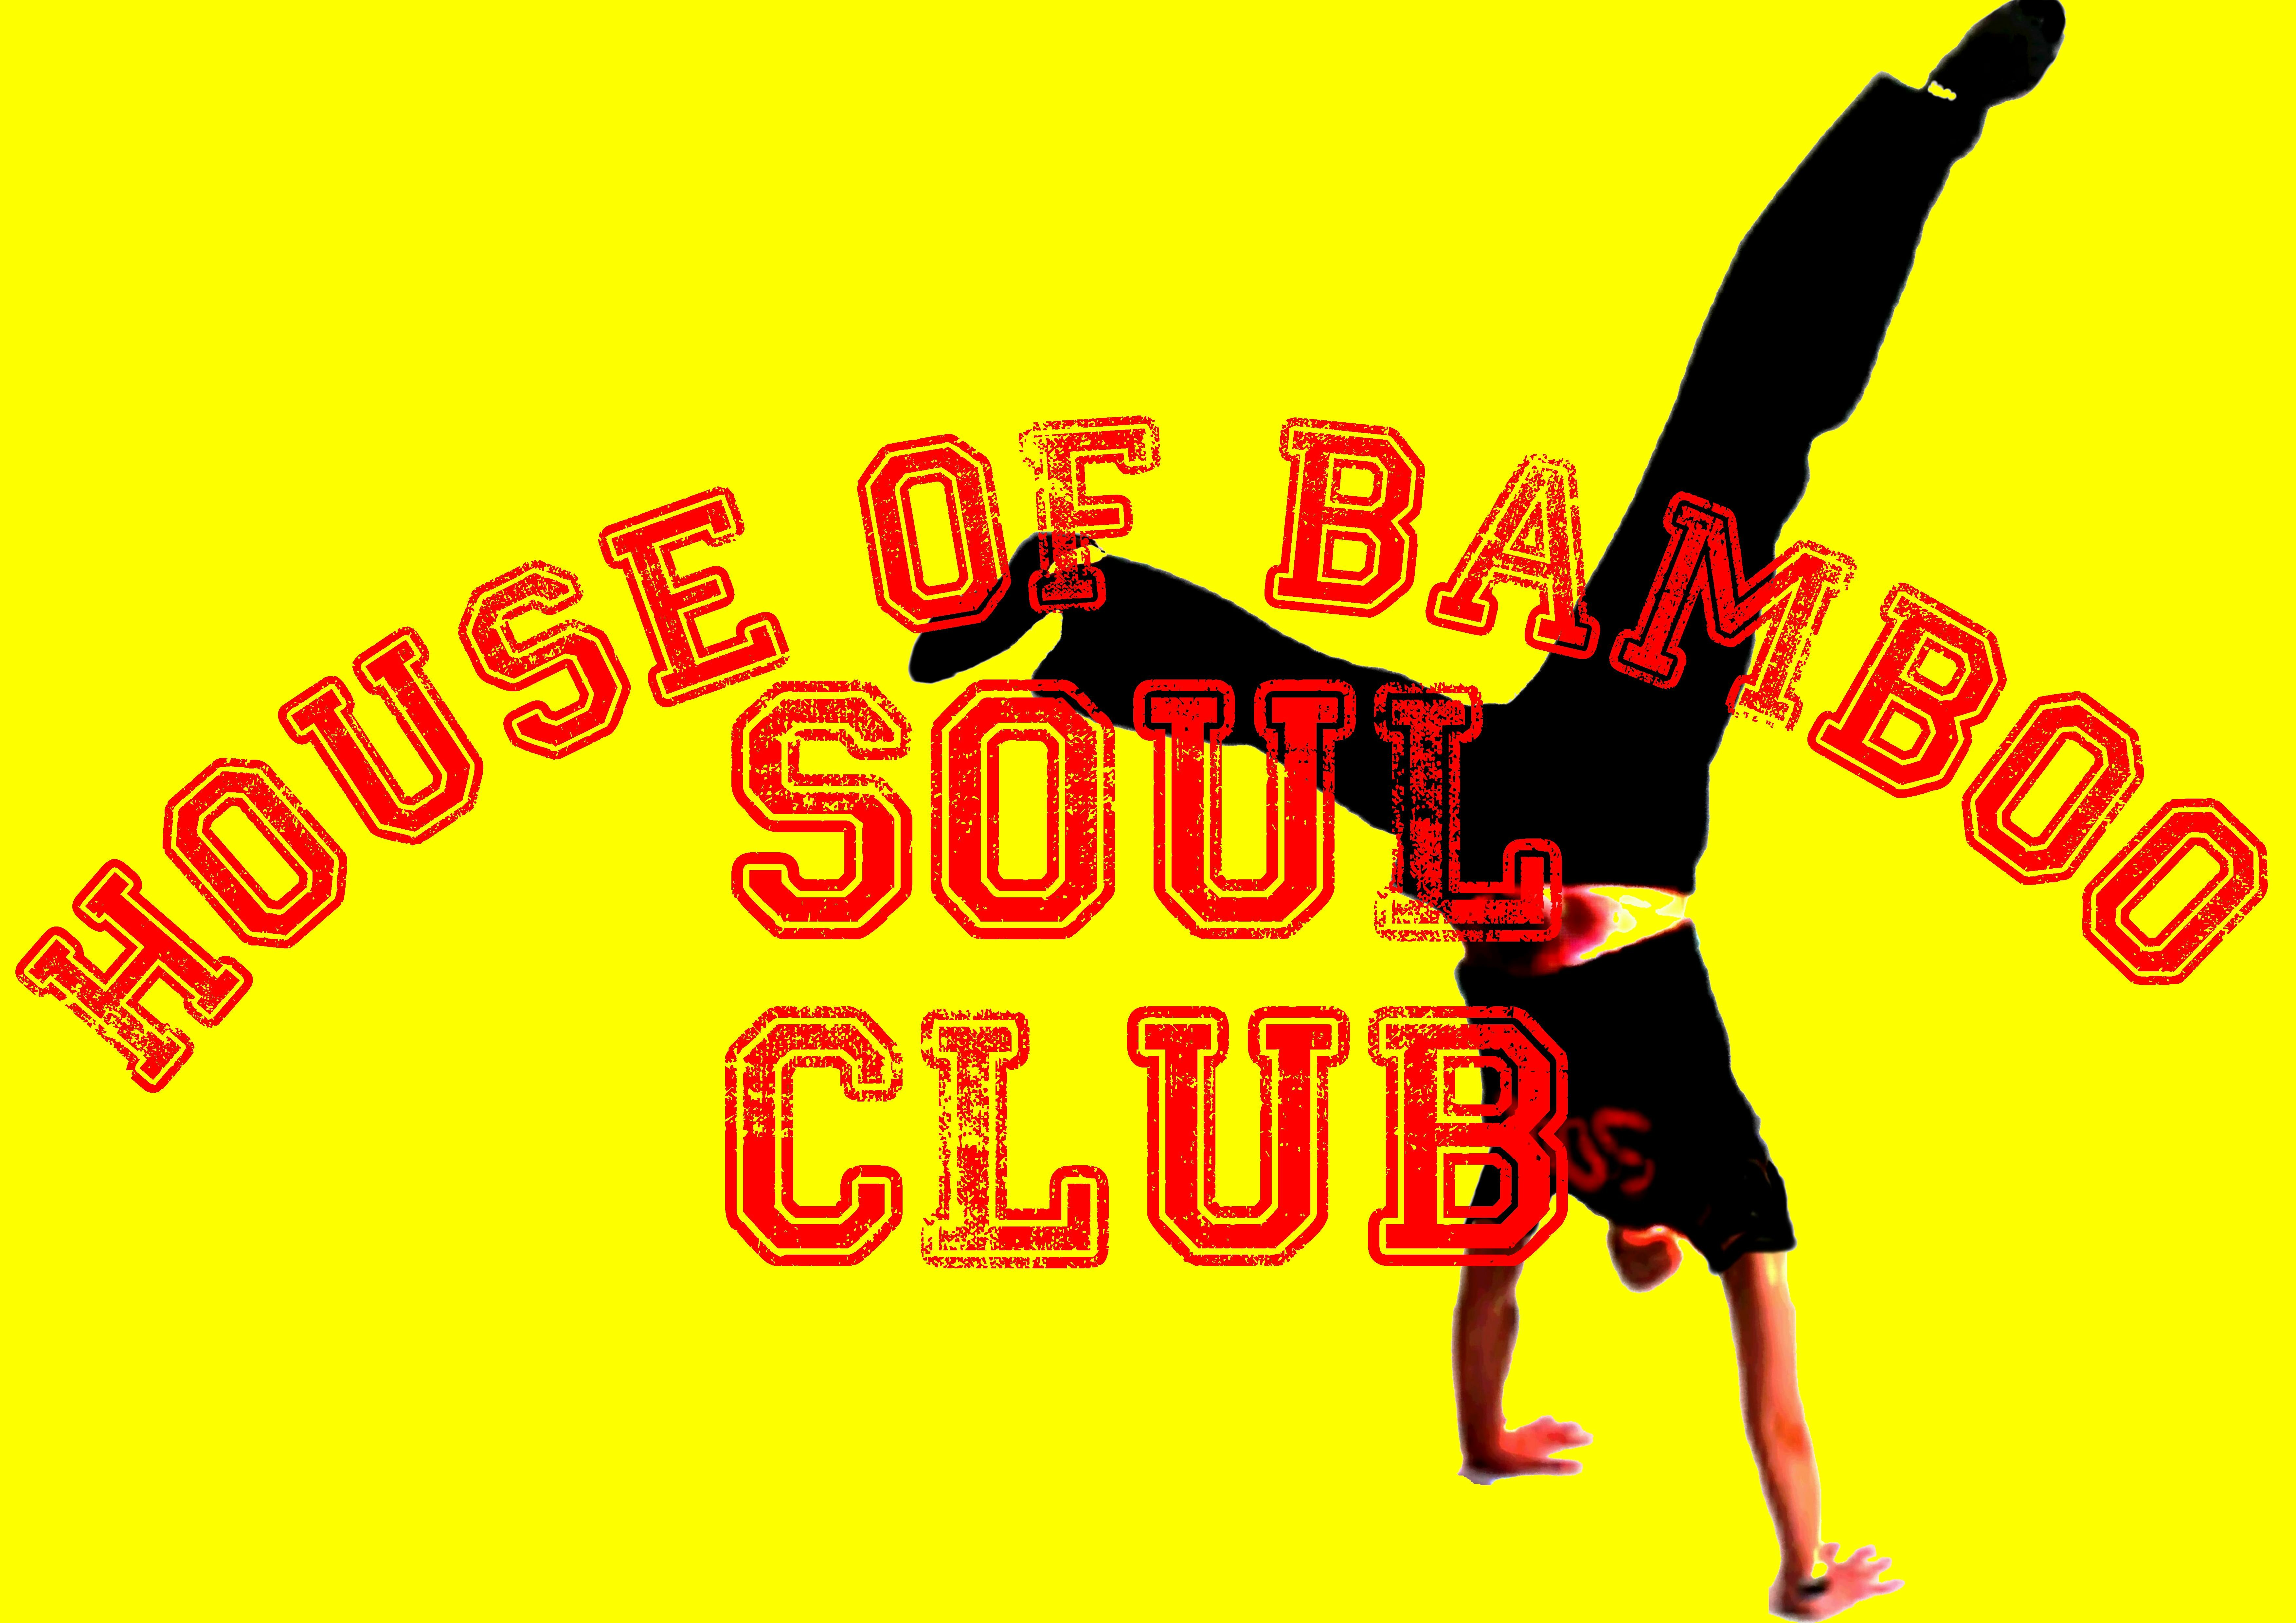 House Of Bamboo Soul Club flyer